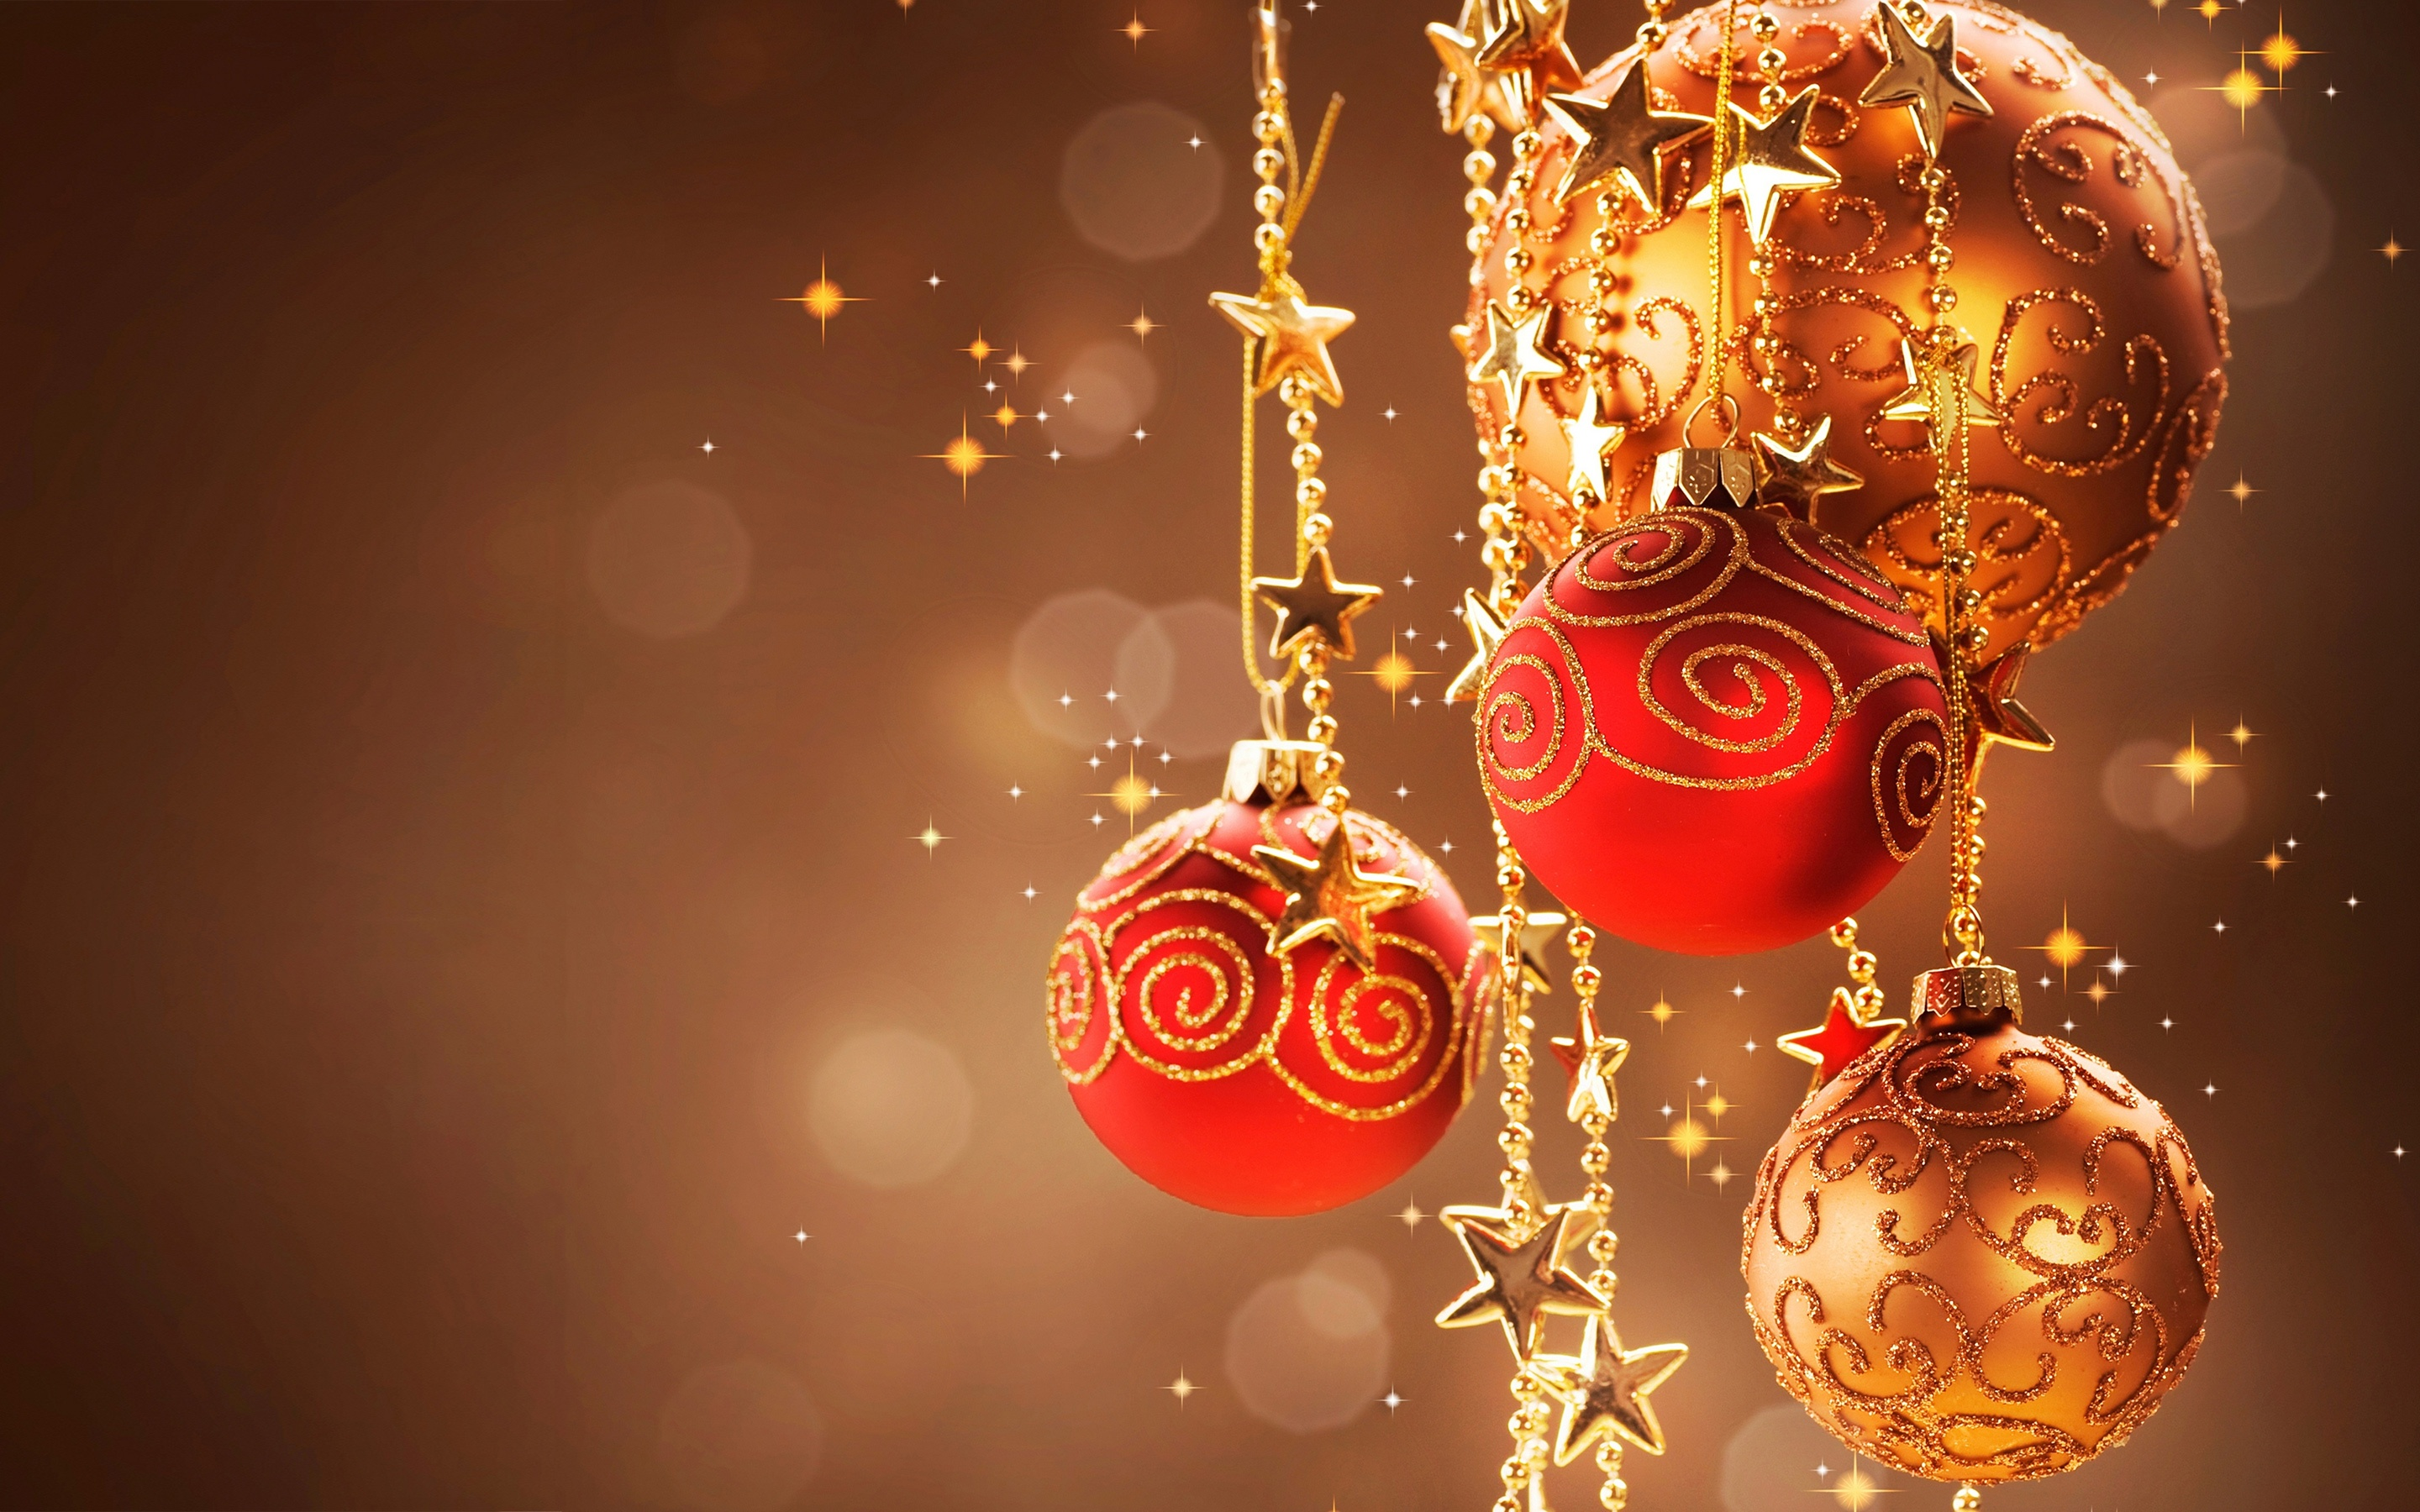 Fantastic Christmas Wallpaper 40201 2880x1800 px HDWallSourcecom